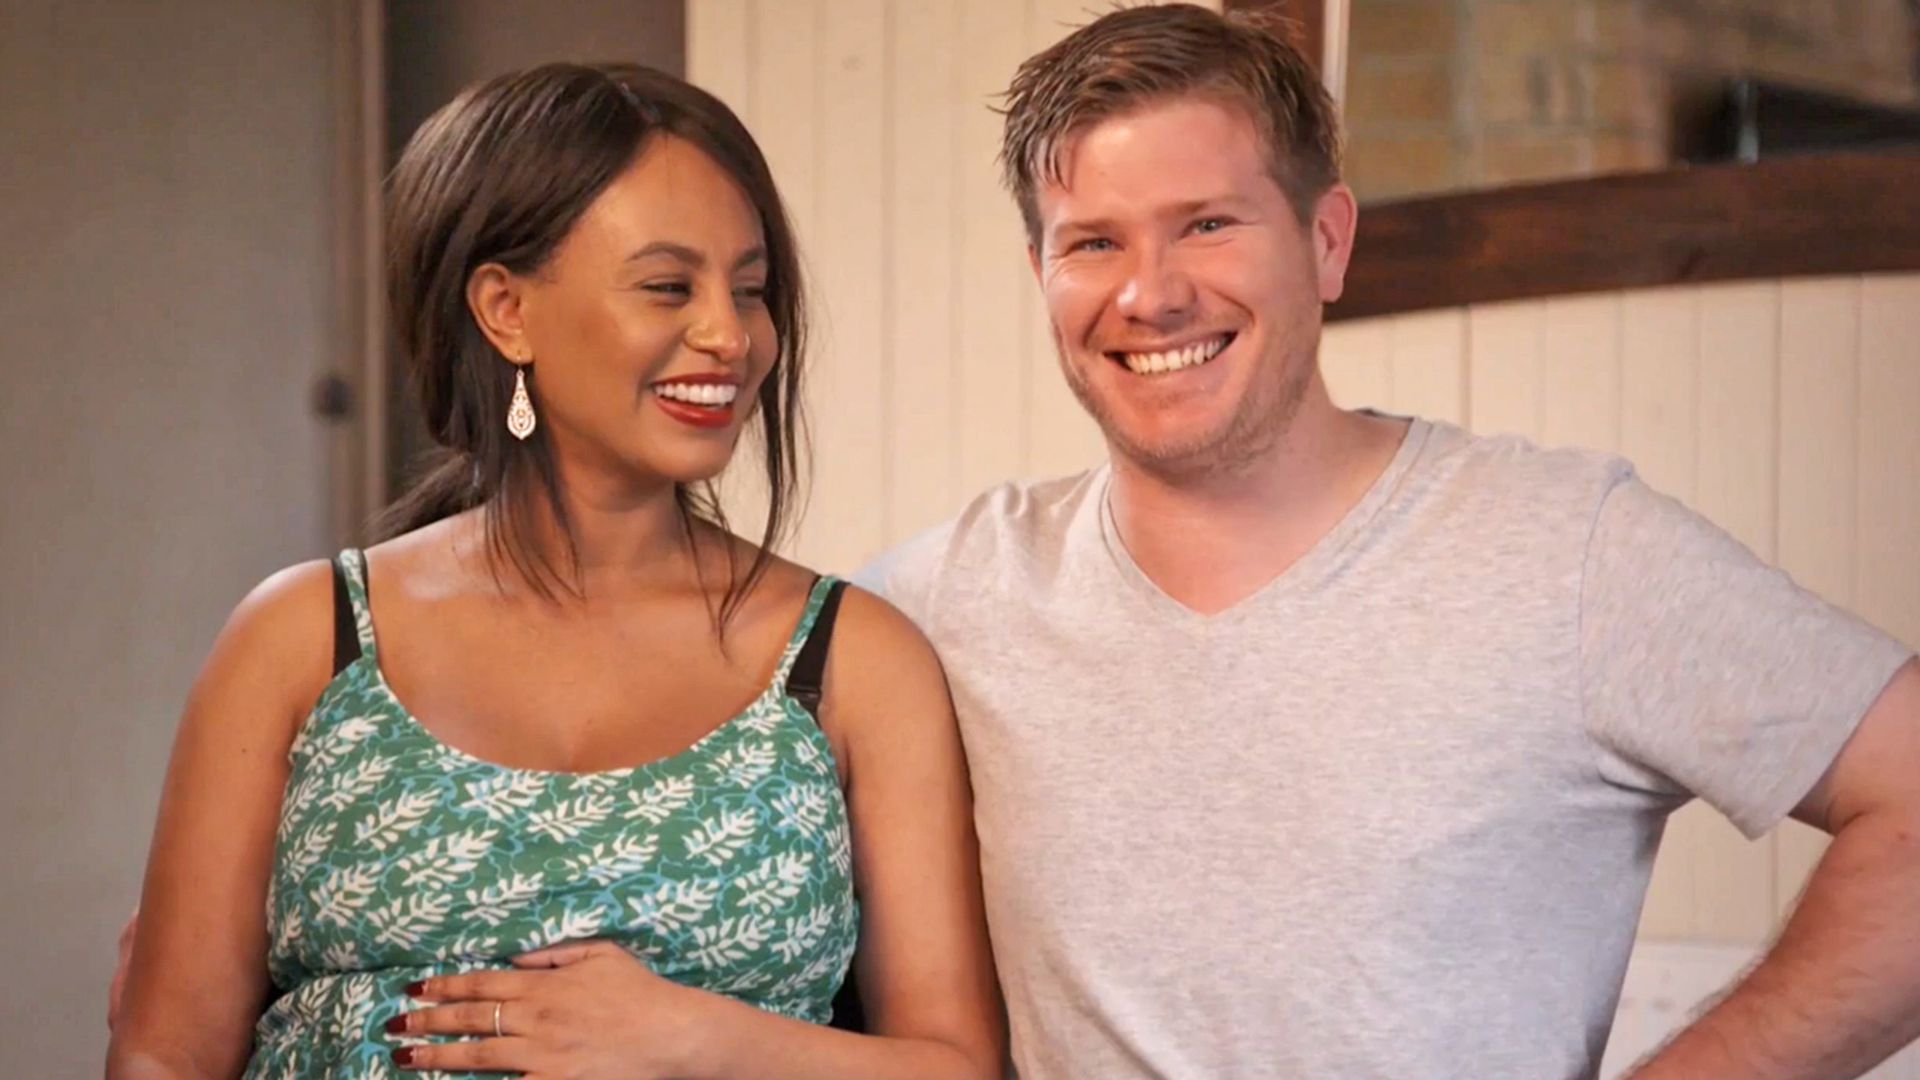 Zoe Alex Expecting Married Sight Extras Season 3 Exclusive Content